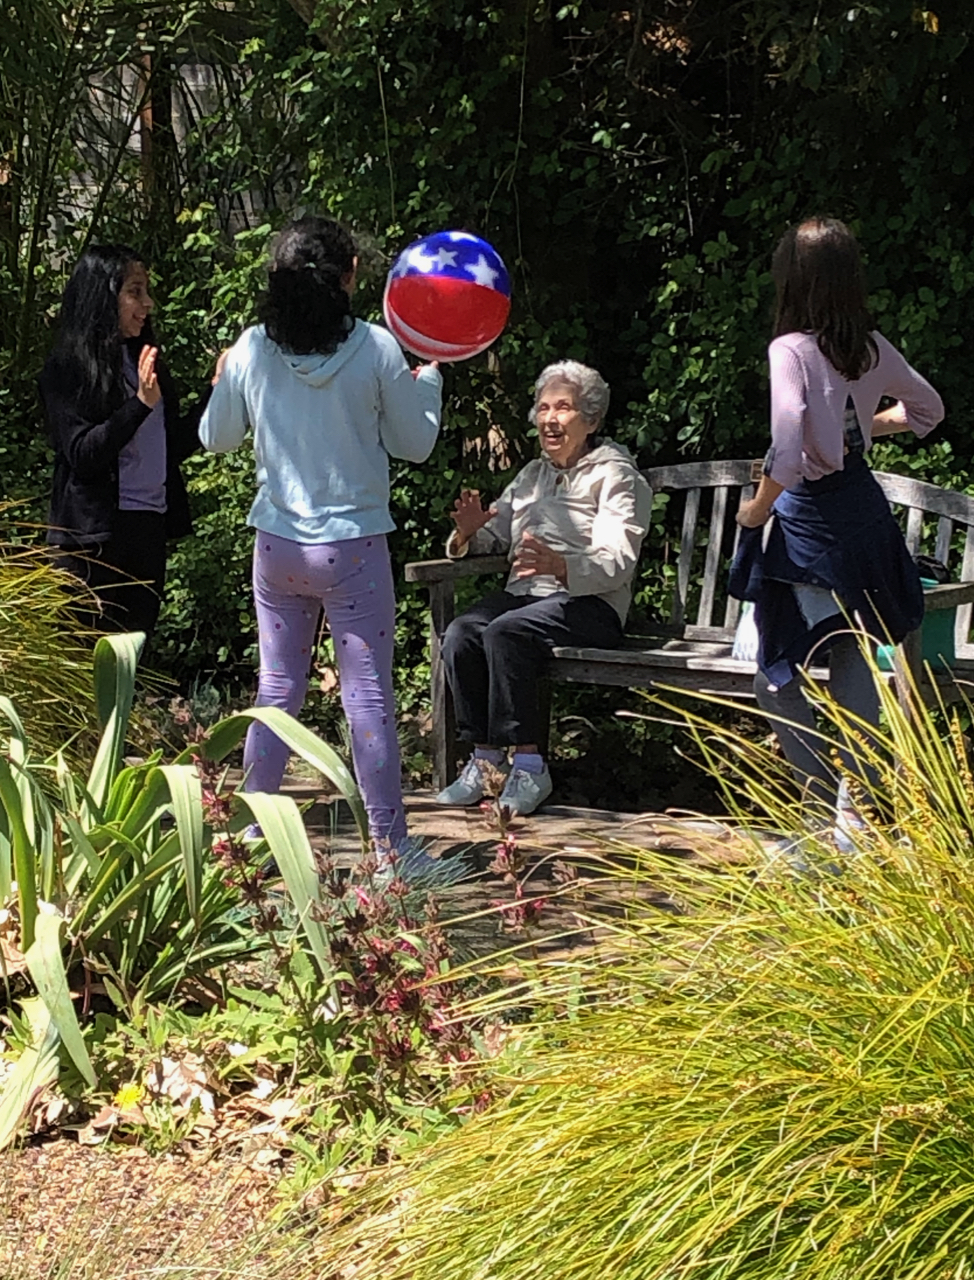 In the great outdoors - Students from Saint Raphael's had lunch and played games in the park with their Buddies from WindChime, thanks to a grant from Marin County Parks Department. Being outdoors is rejuvenating for everyone and sharing a meal is a great way to connect.